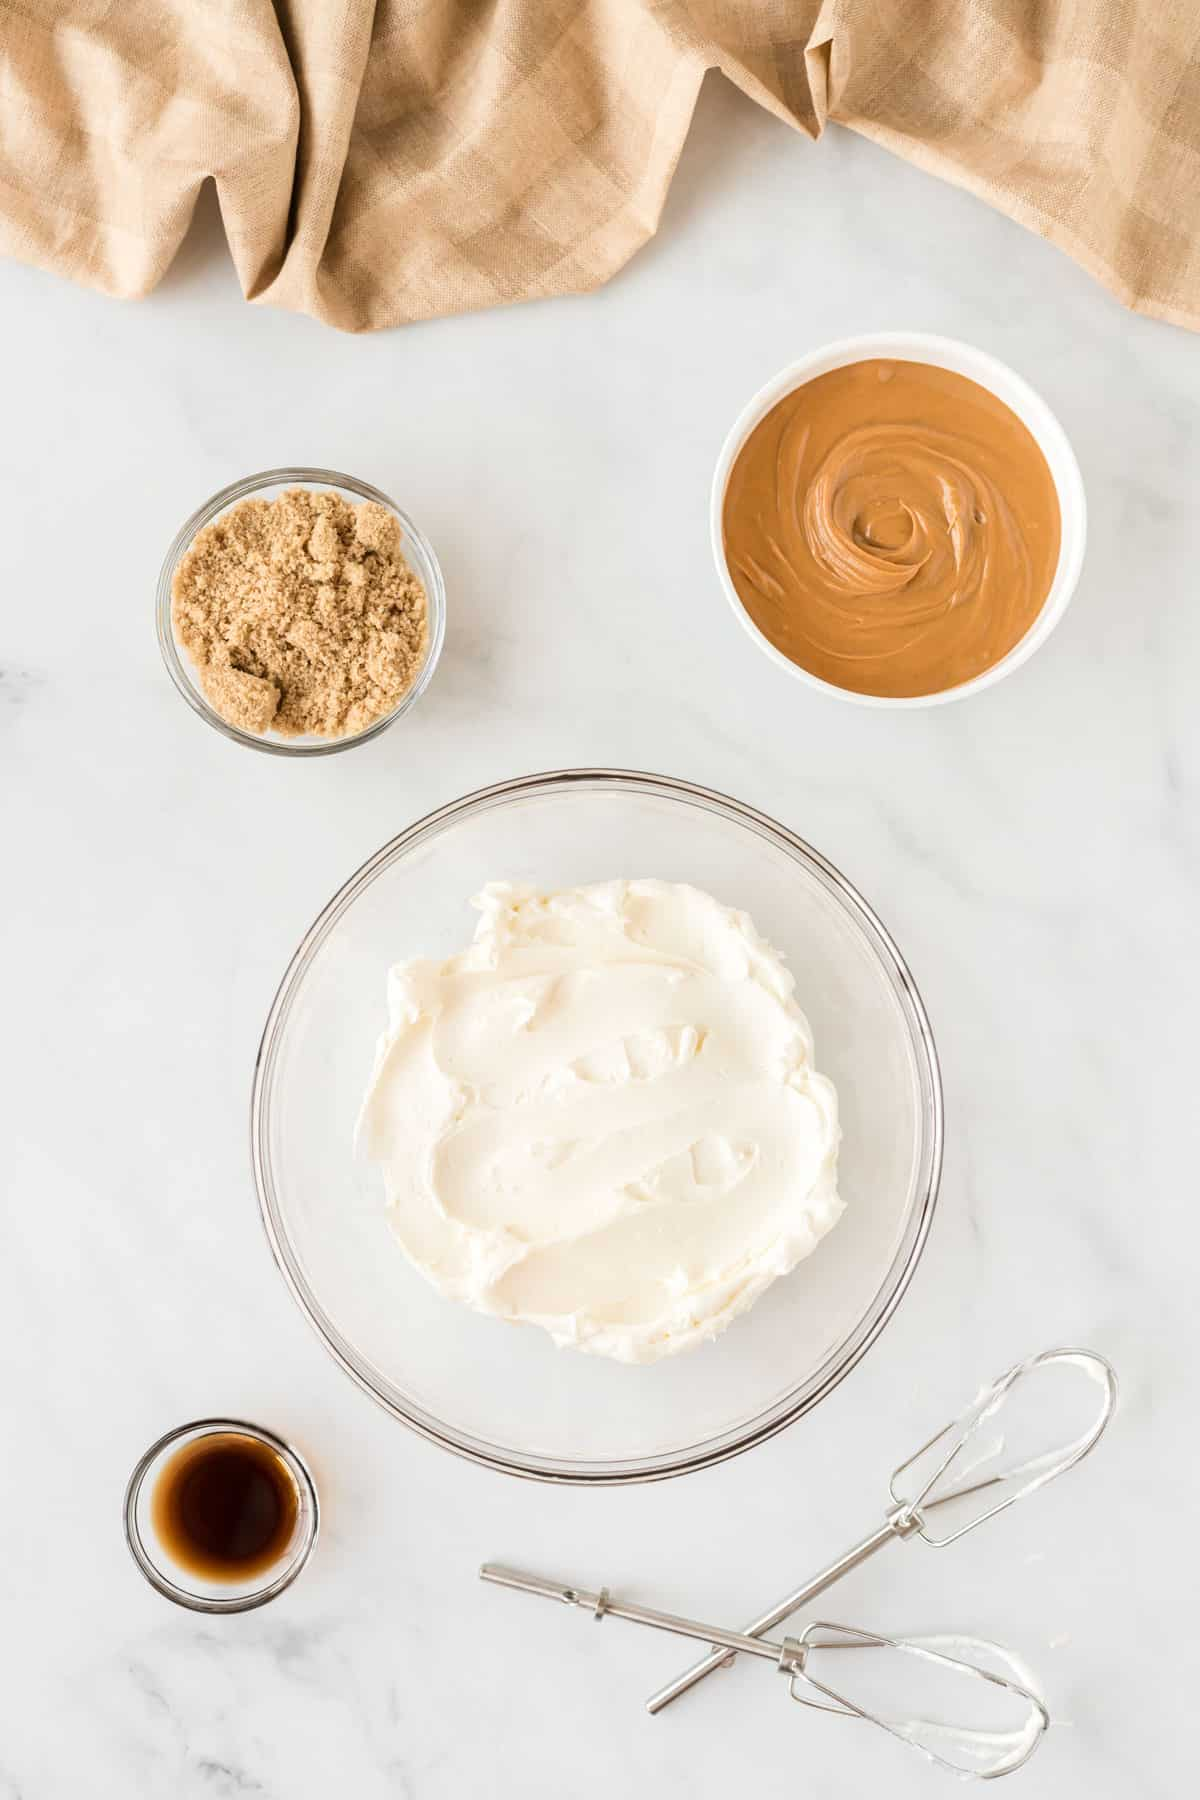 cream cheese, peanut butter, and sugar in bowls